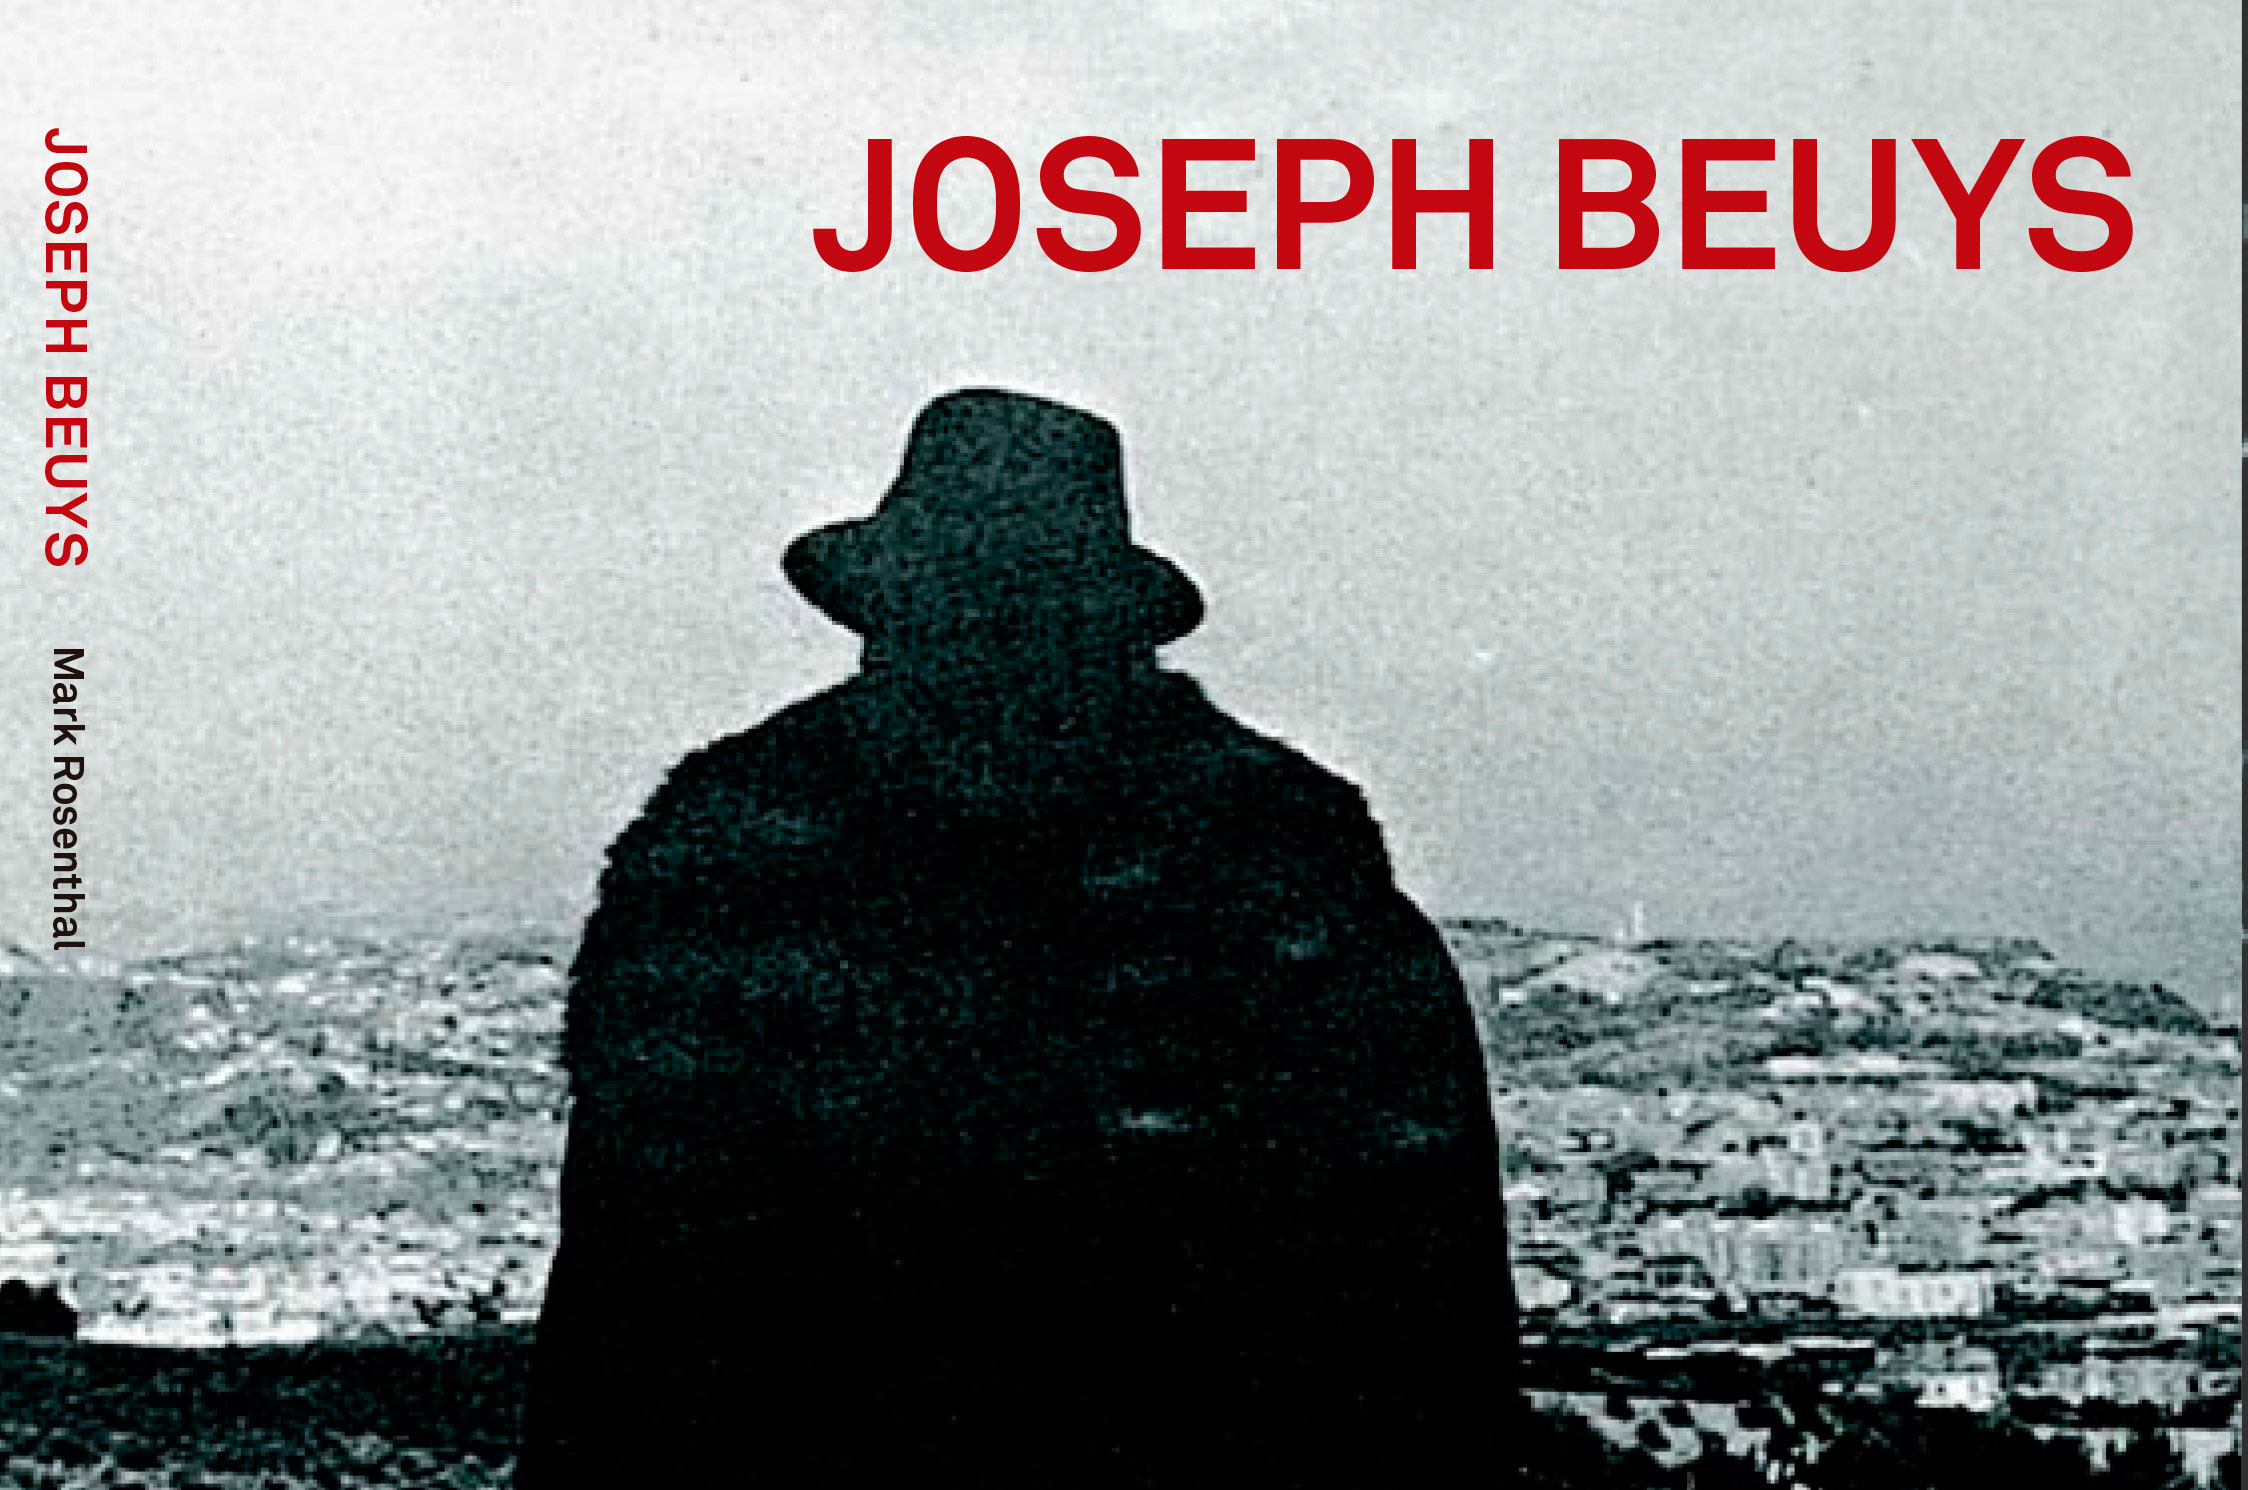 Library - Catalogue of Joseph Beuys. Obras 1955-1985